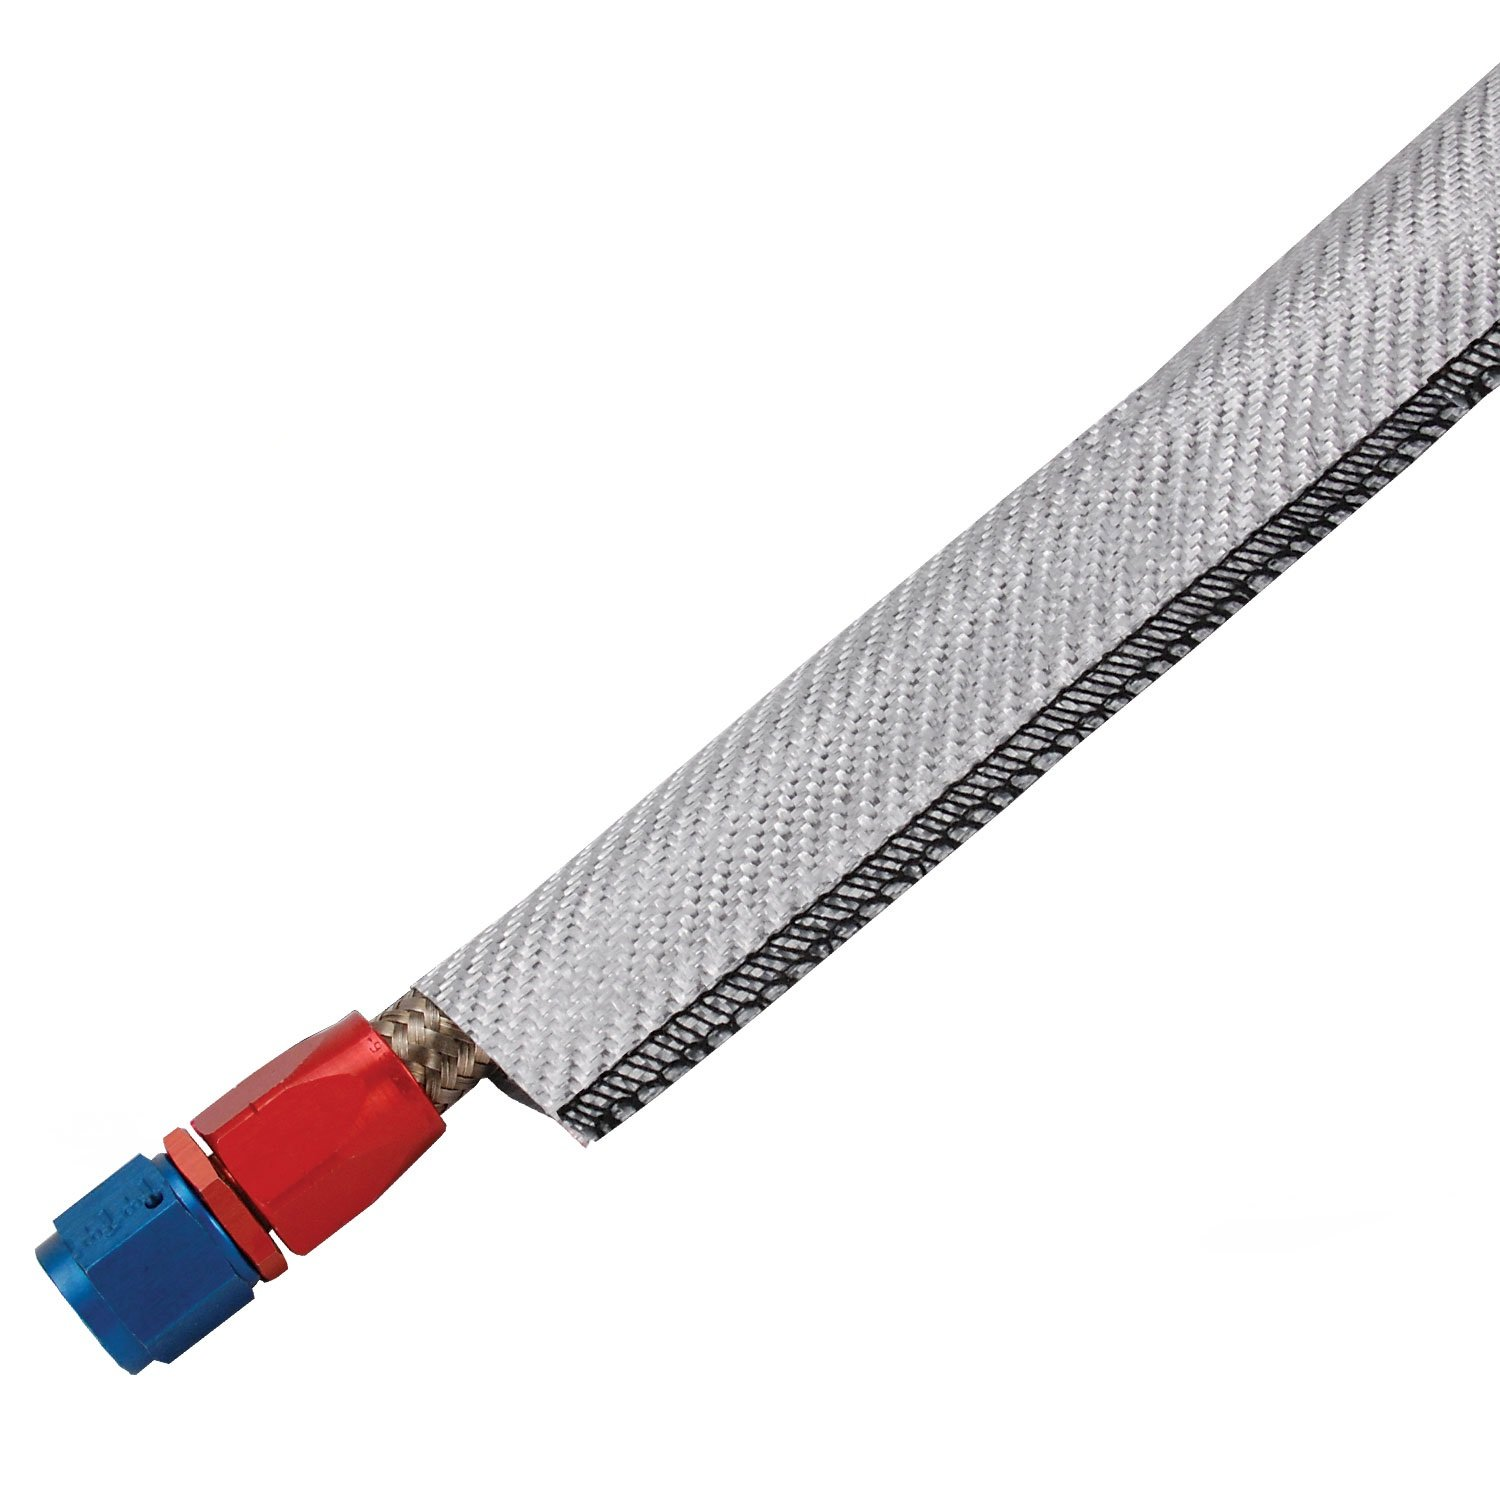 Design Engineering 010232 Ultra Sheath MA Lightweight Extreme Heat Protection for Hoses, Fuel Lines & Electrical Wiring, 0.75 x 3' 0.75 x 3' DEI